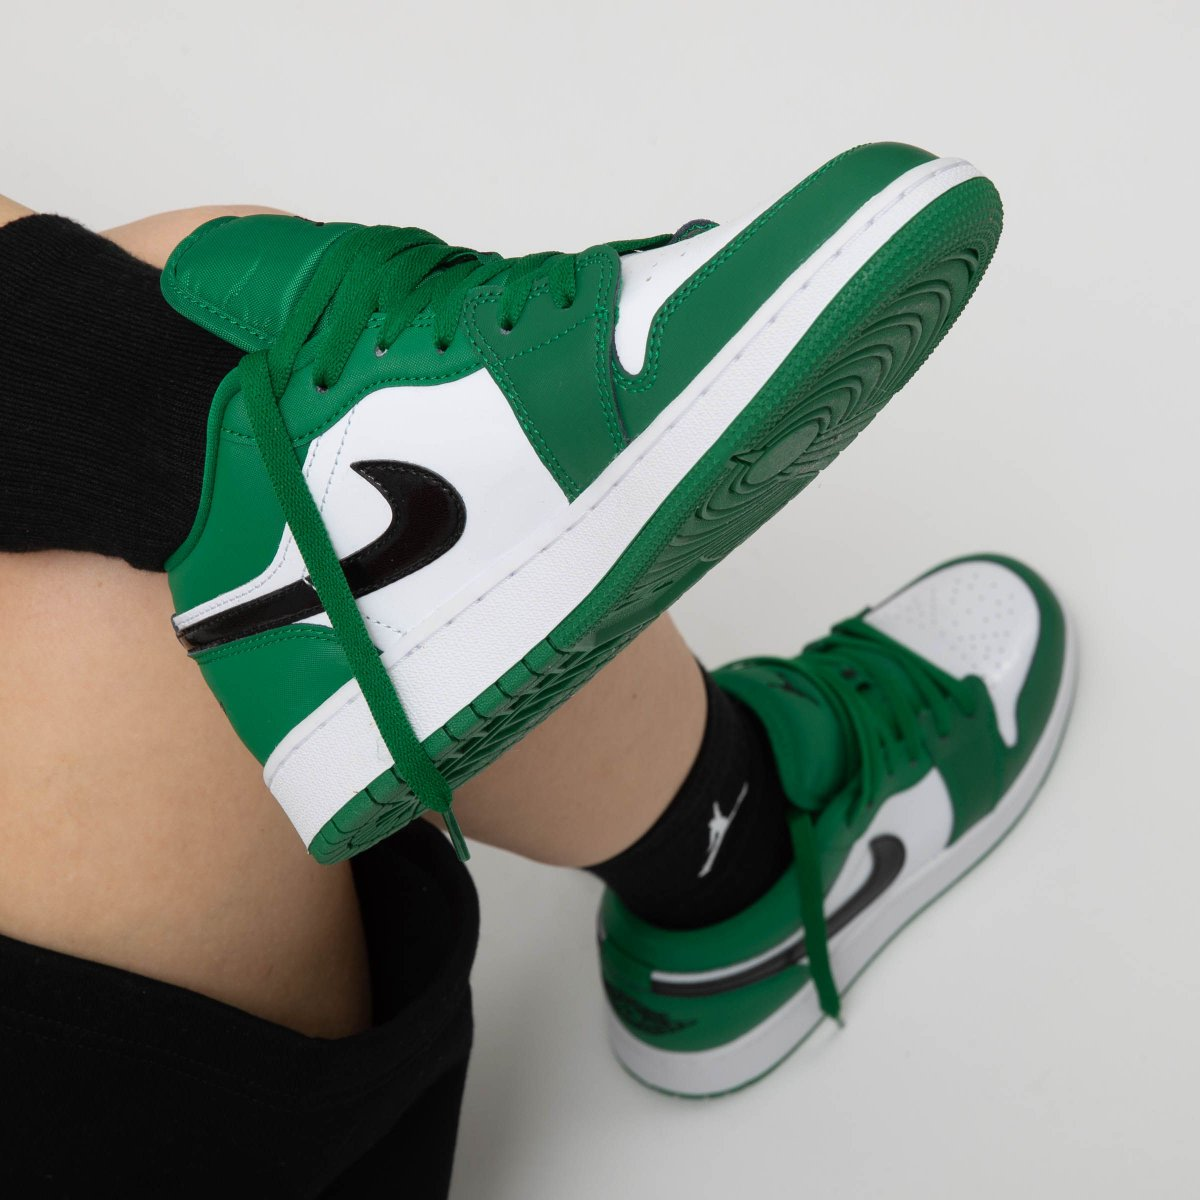 NIKE AIR JORDAN 1 LOW PINE GREEN 553558-301